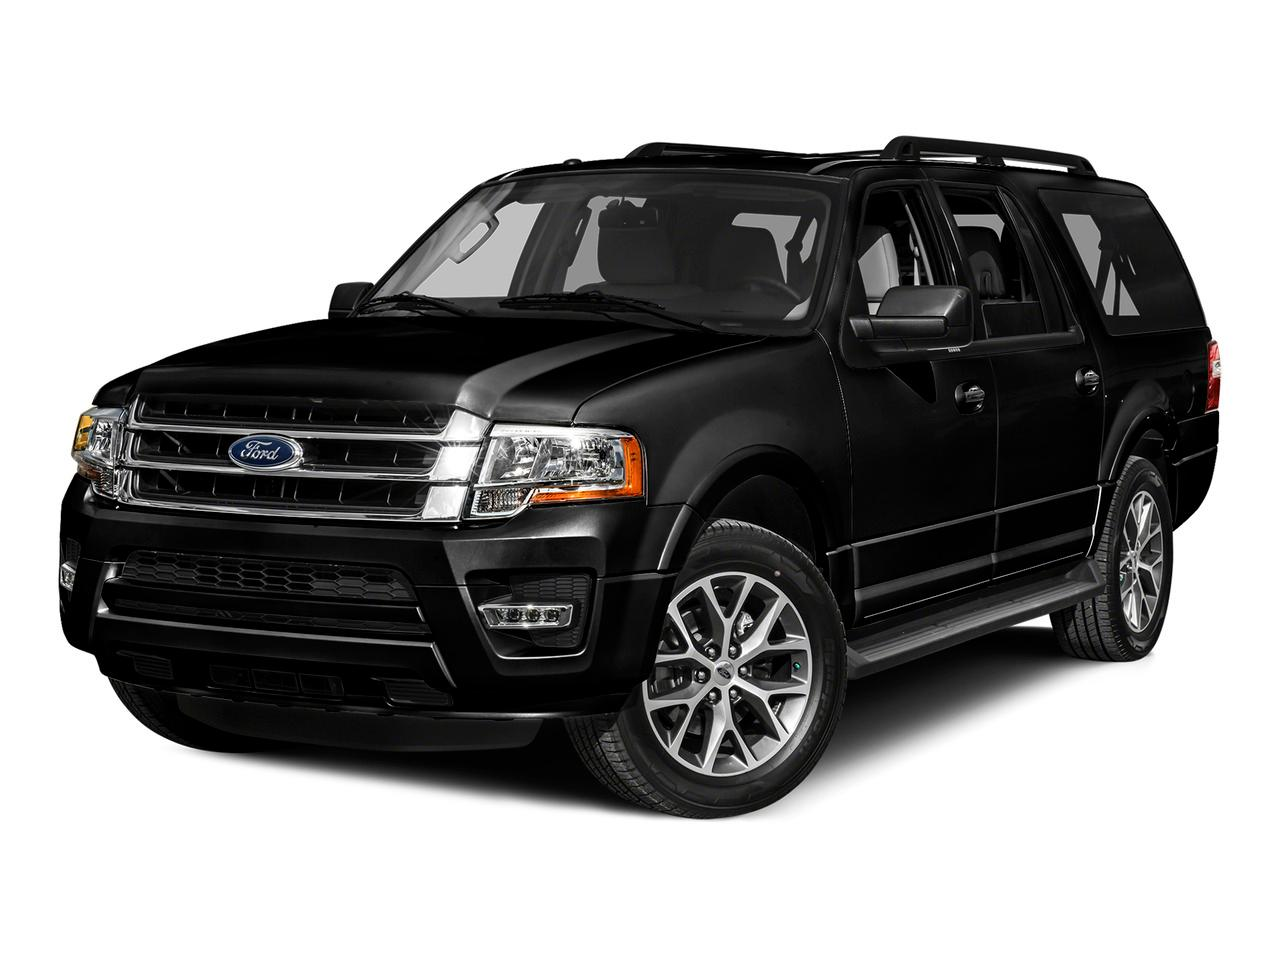 2015 Ford Expedition EL Vehicle Photo in Houston, TX 77074